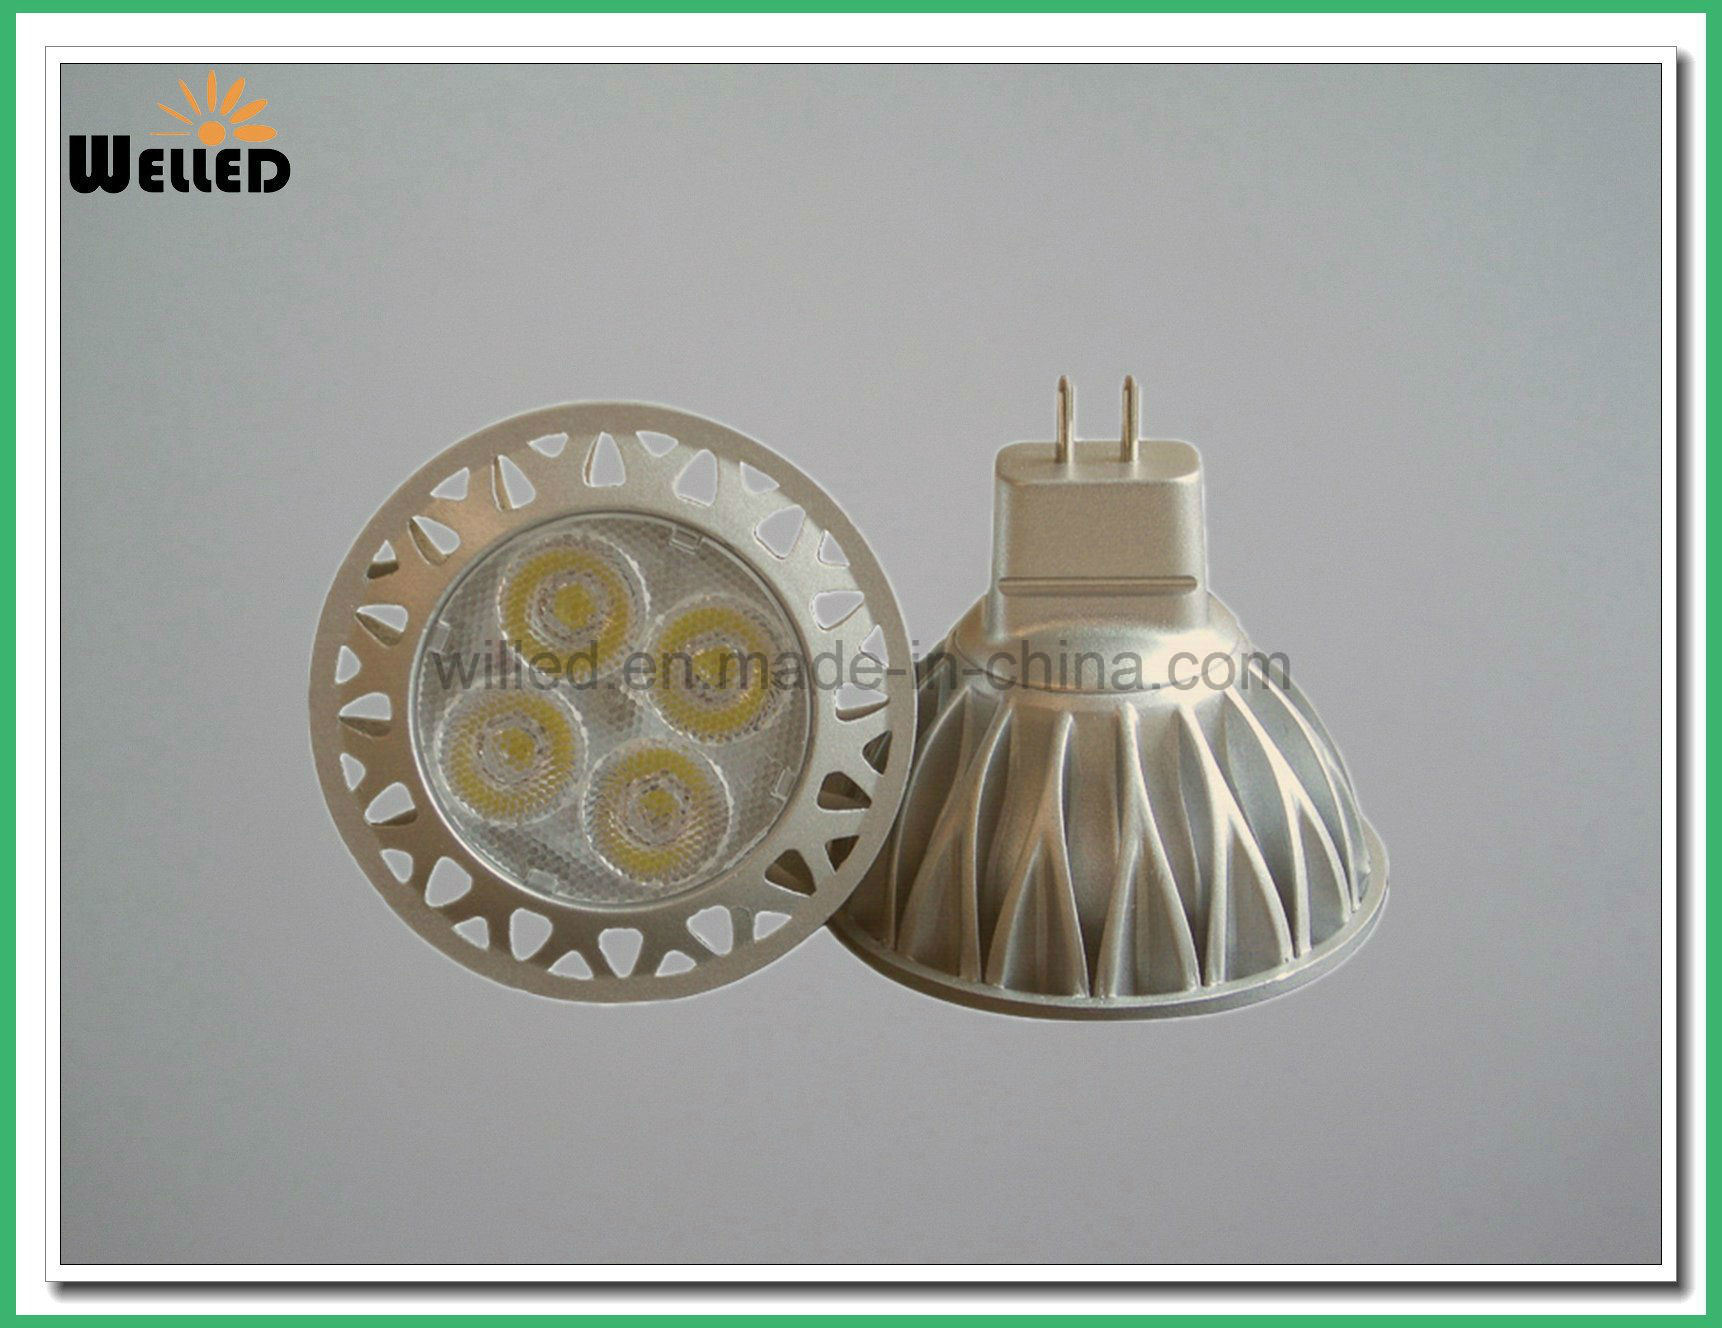 DC12V Retrofit LED MR16 Bulb Light 5W 6W LED Spot Lighting with Ce RoHS for 50W Replacements